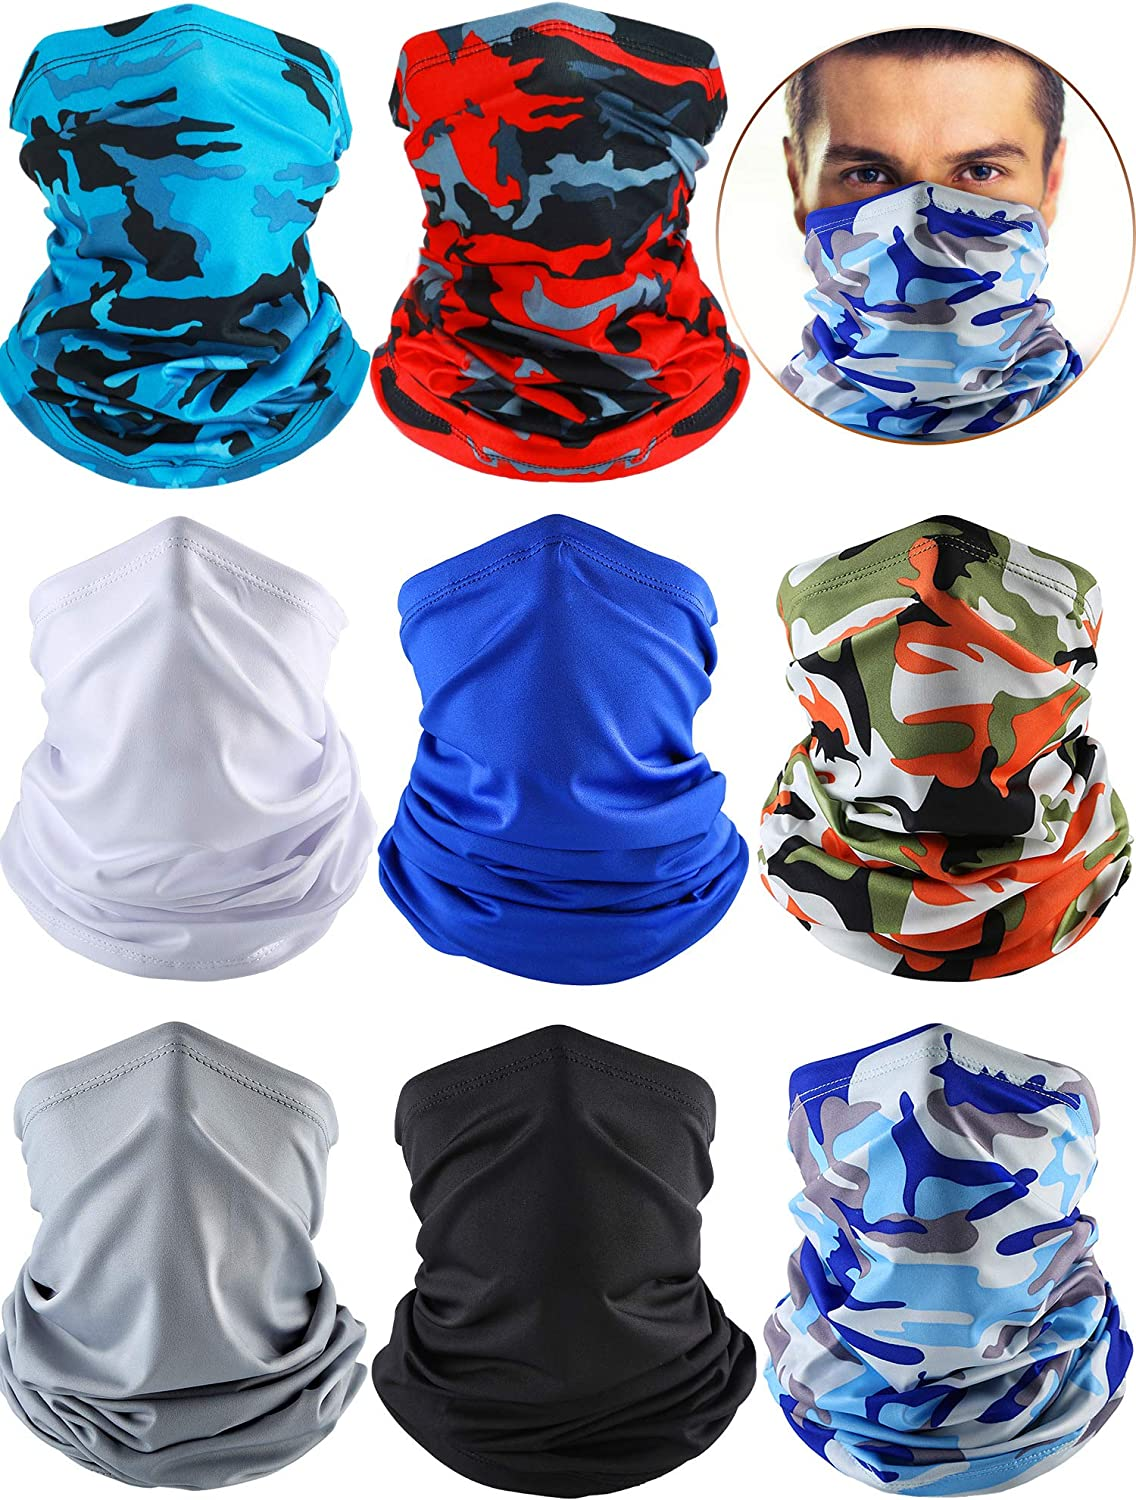 8 Pieces Summer UV Protection Scarf Coolin Neck Seattle Lowest price challenge Mall Gaiter Balaclava